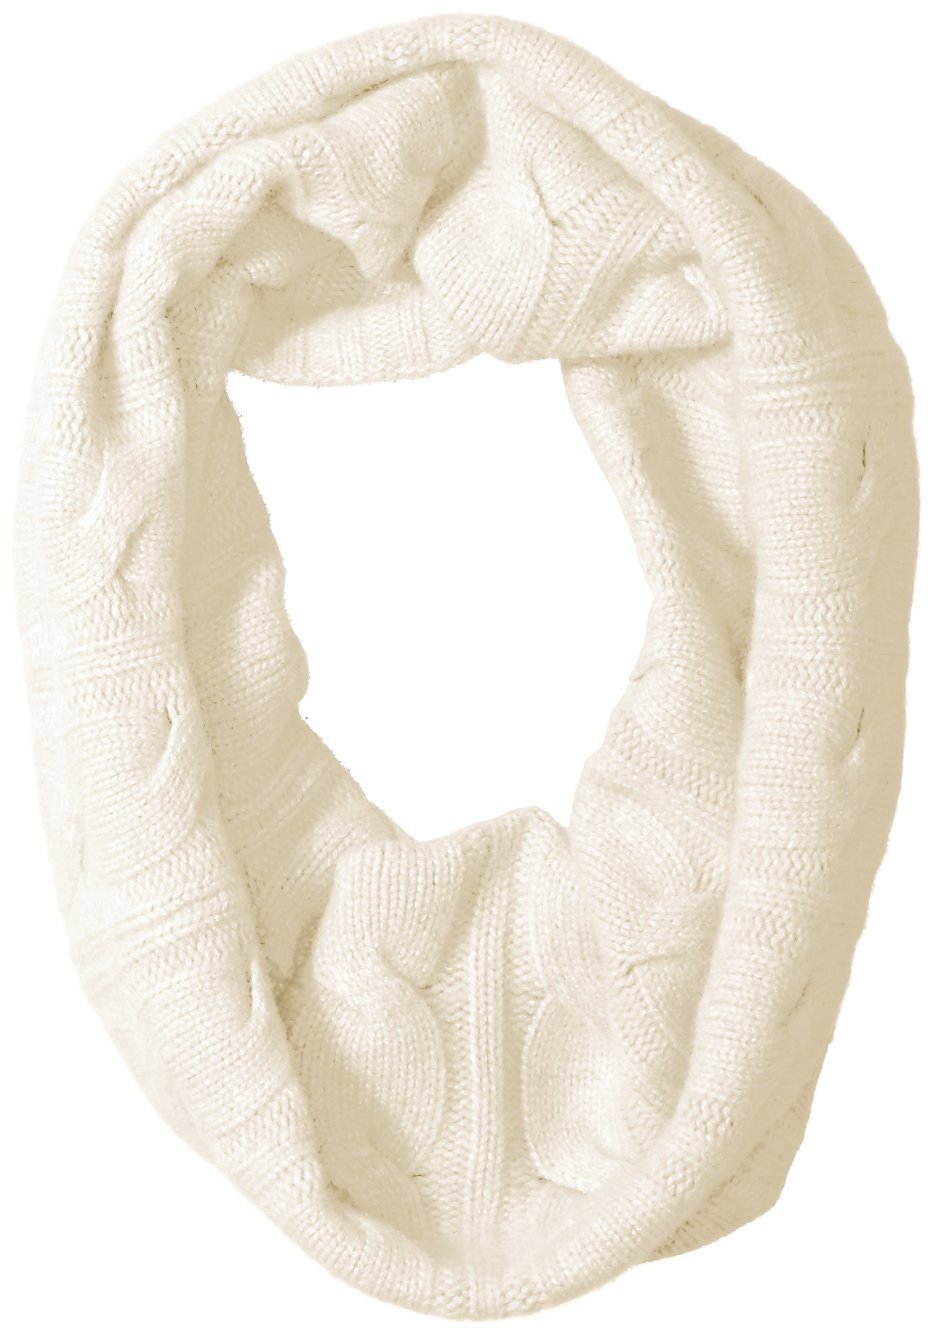 Sofia Cashmere Women's 100 Percent Cashmere Cable Snood, Ivory, One by Sofia Cashmere